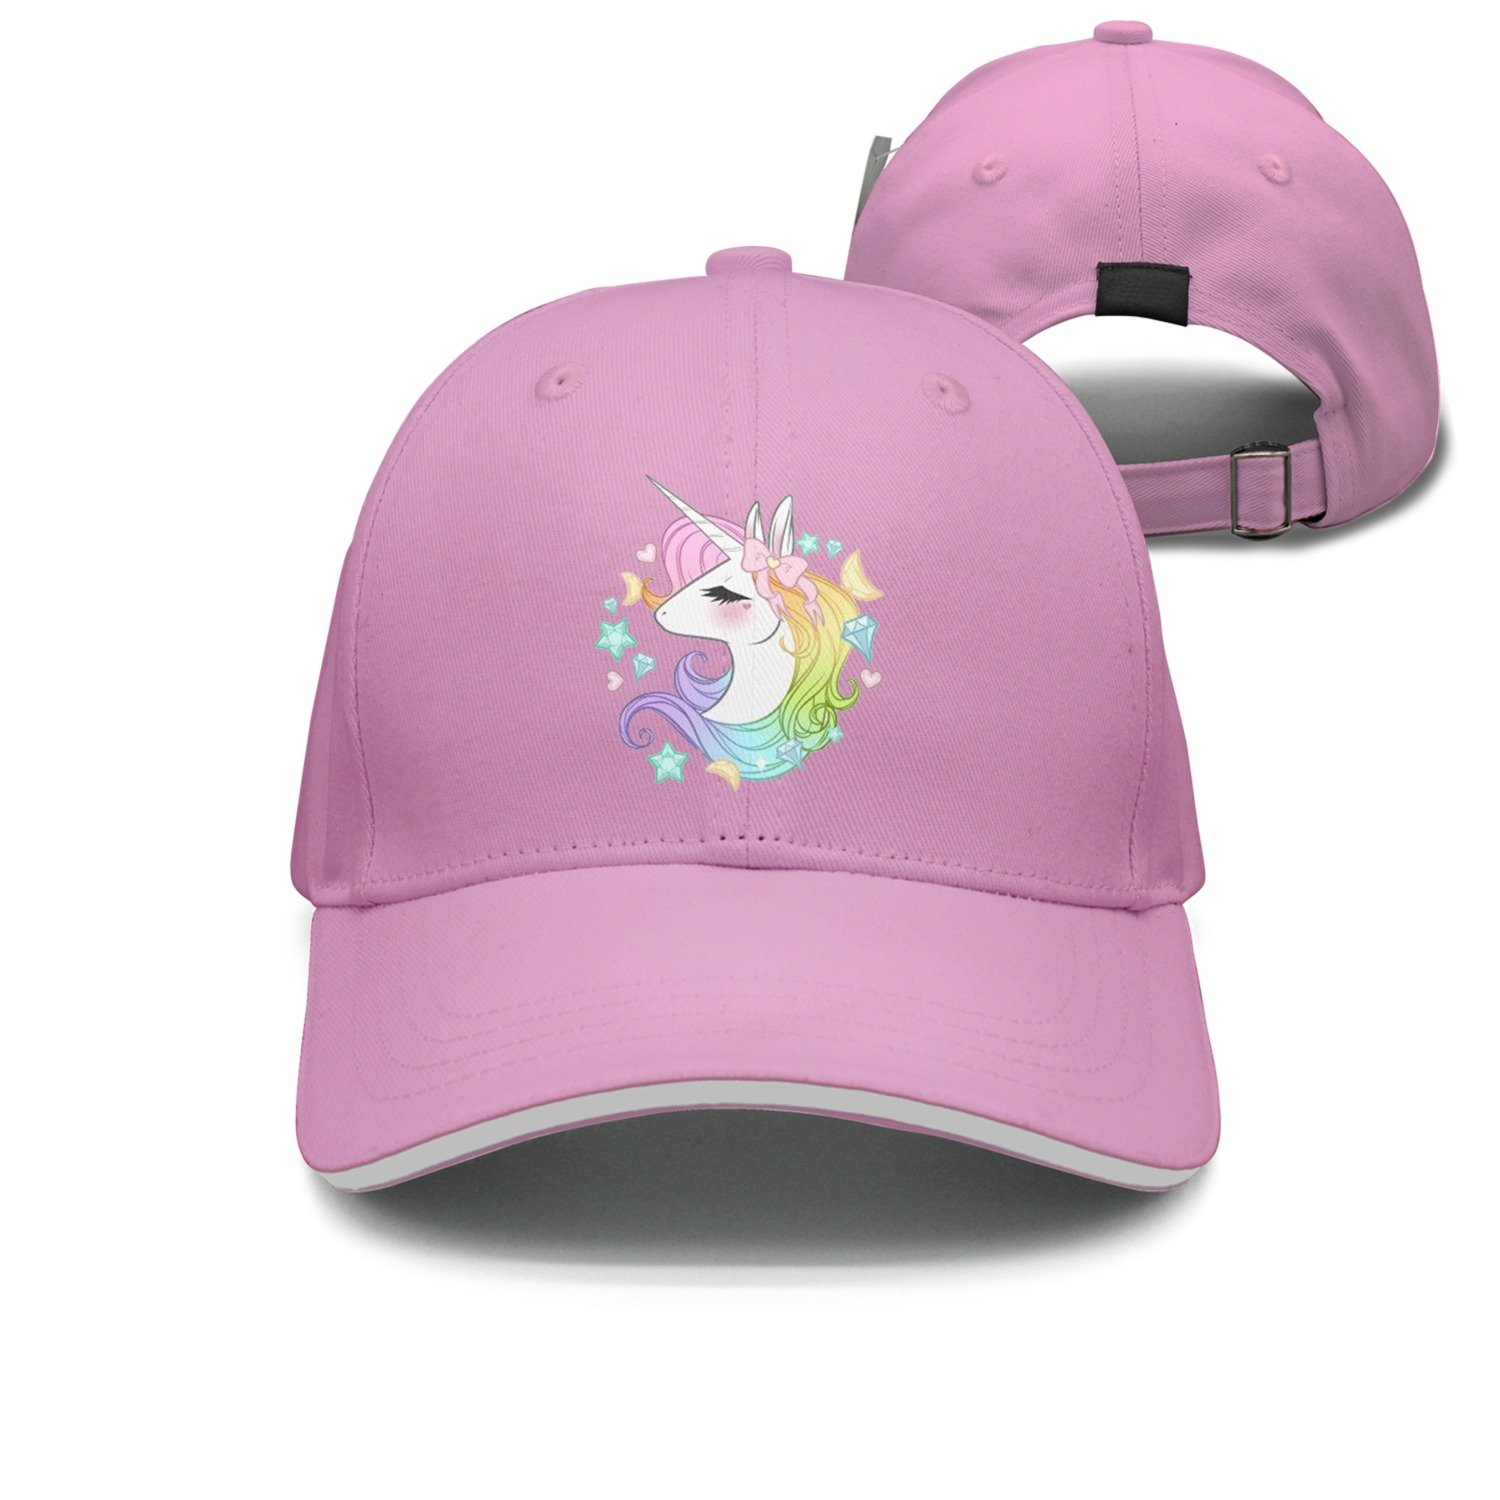 LoKIDve Cute Unicorns Boys Girls Mesh Cap Trucker Hats Adjustable Black